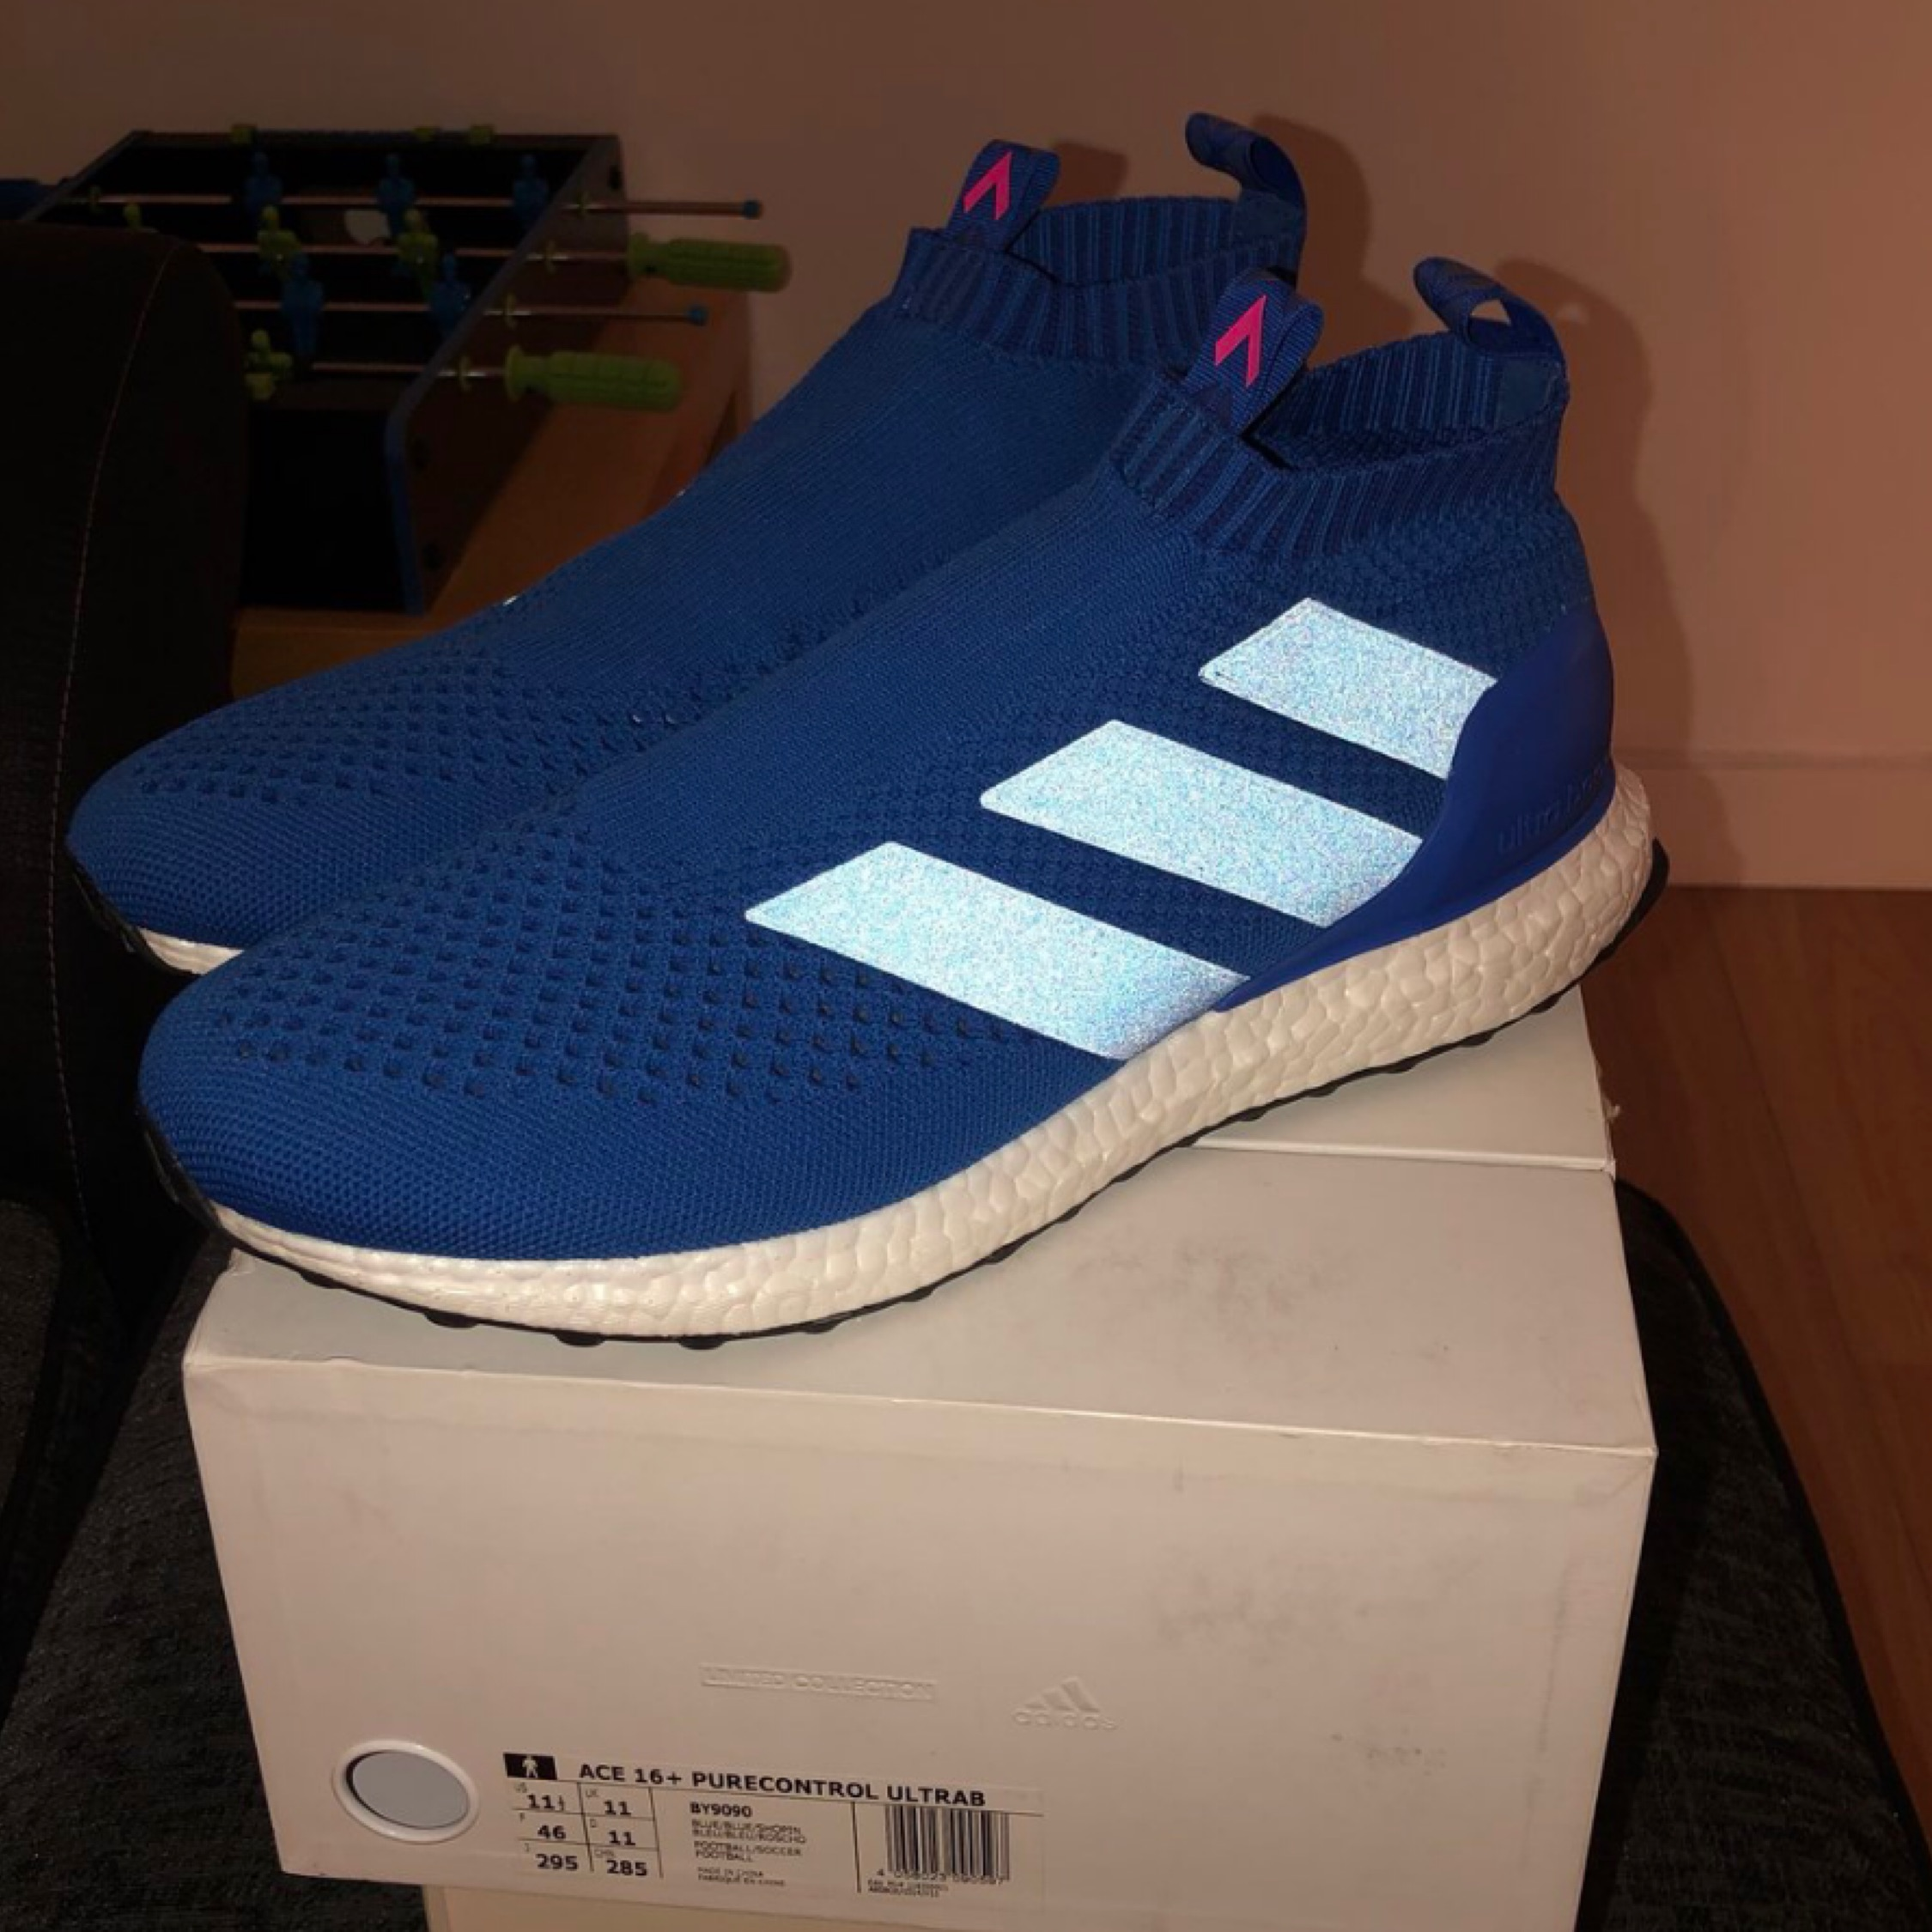 Adidas Pure Control 16 Ultra Boost Trainers